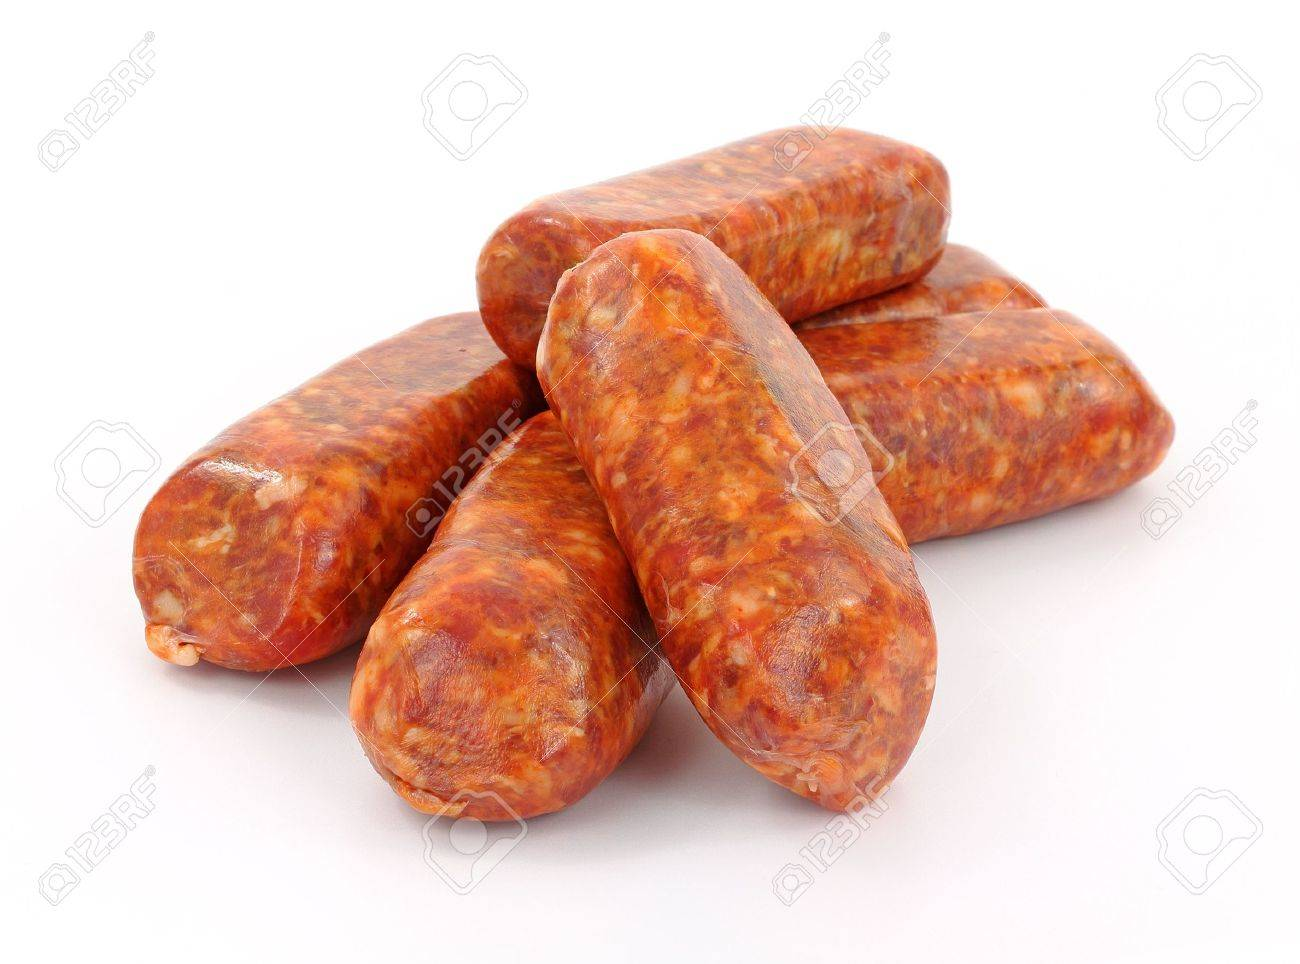 A group of freshly made hot Italian sausage links on a white background. Stock Photo - 9417552